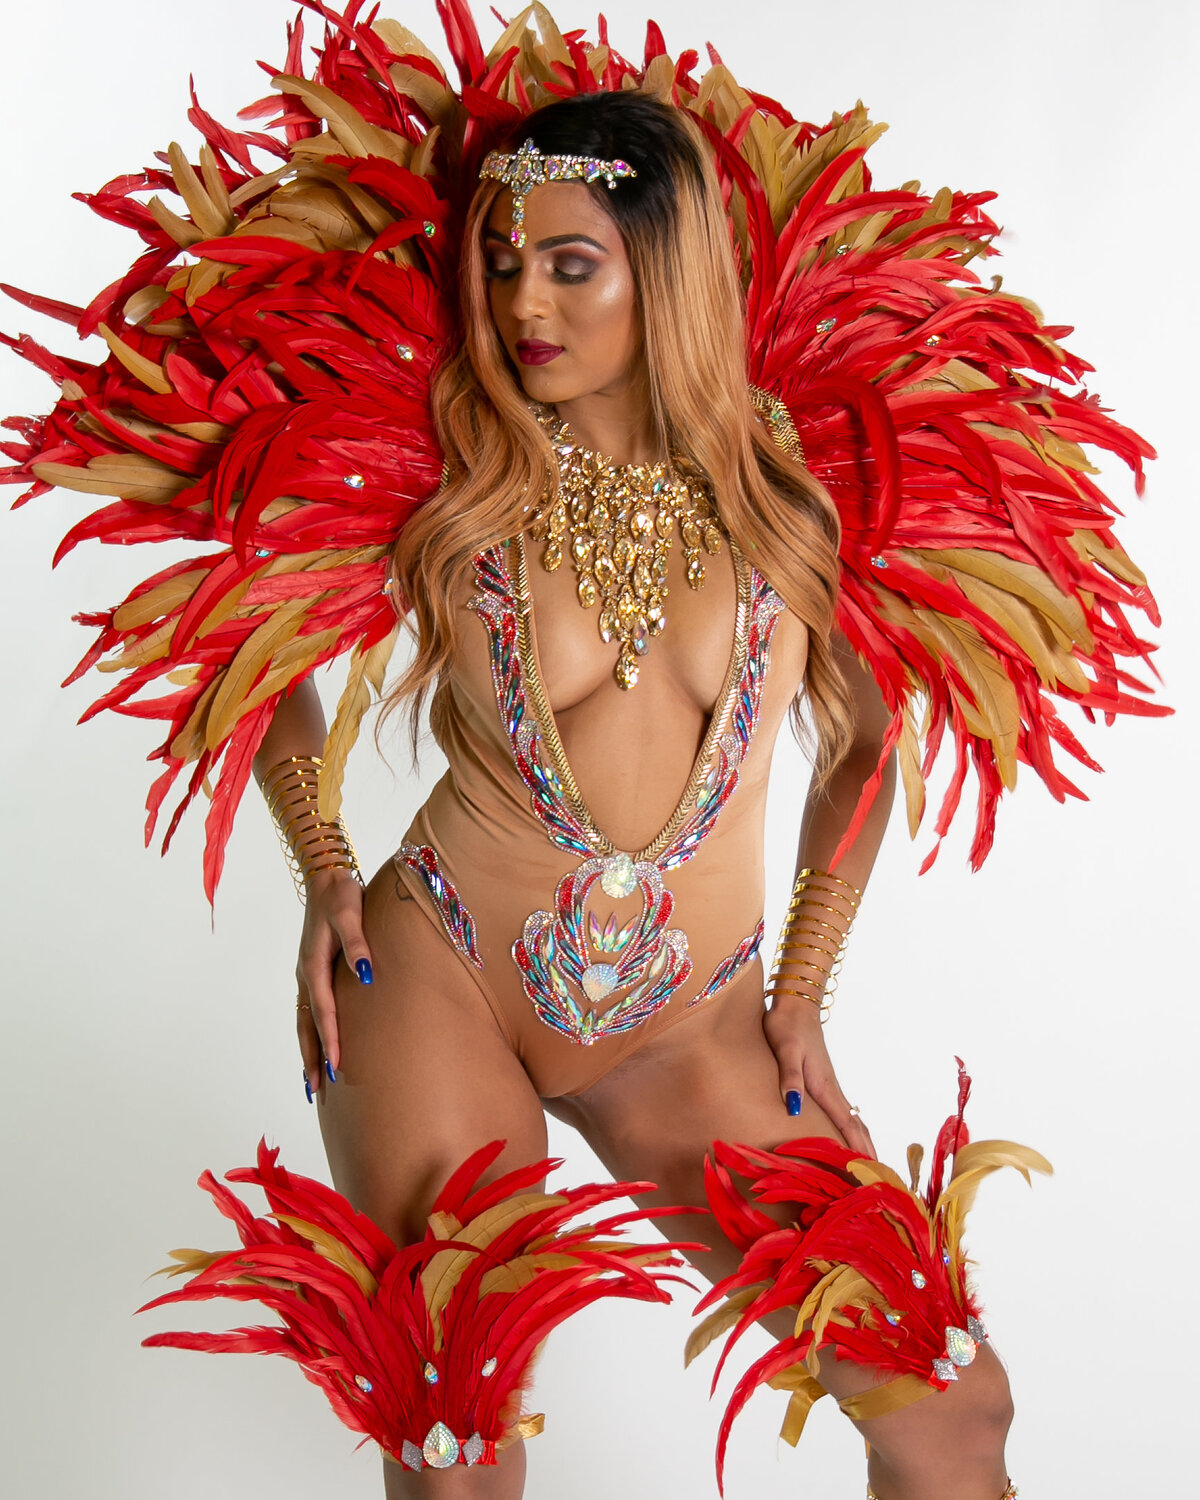 Toronto caribana 2021 costumes for sale